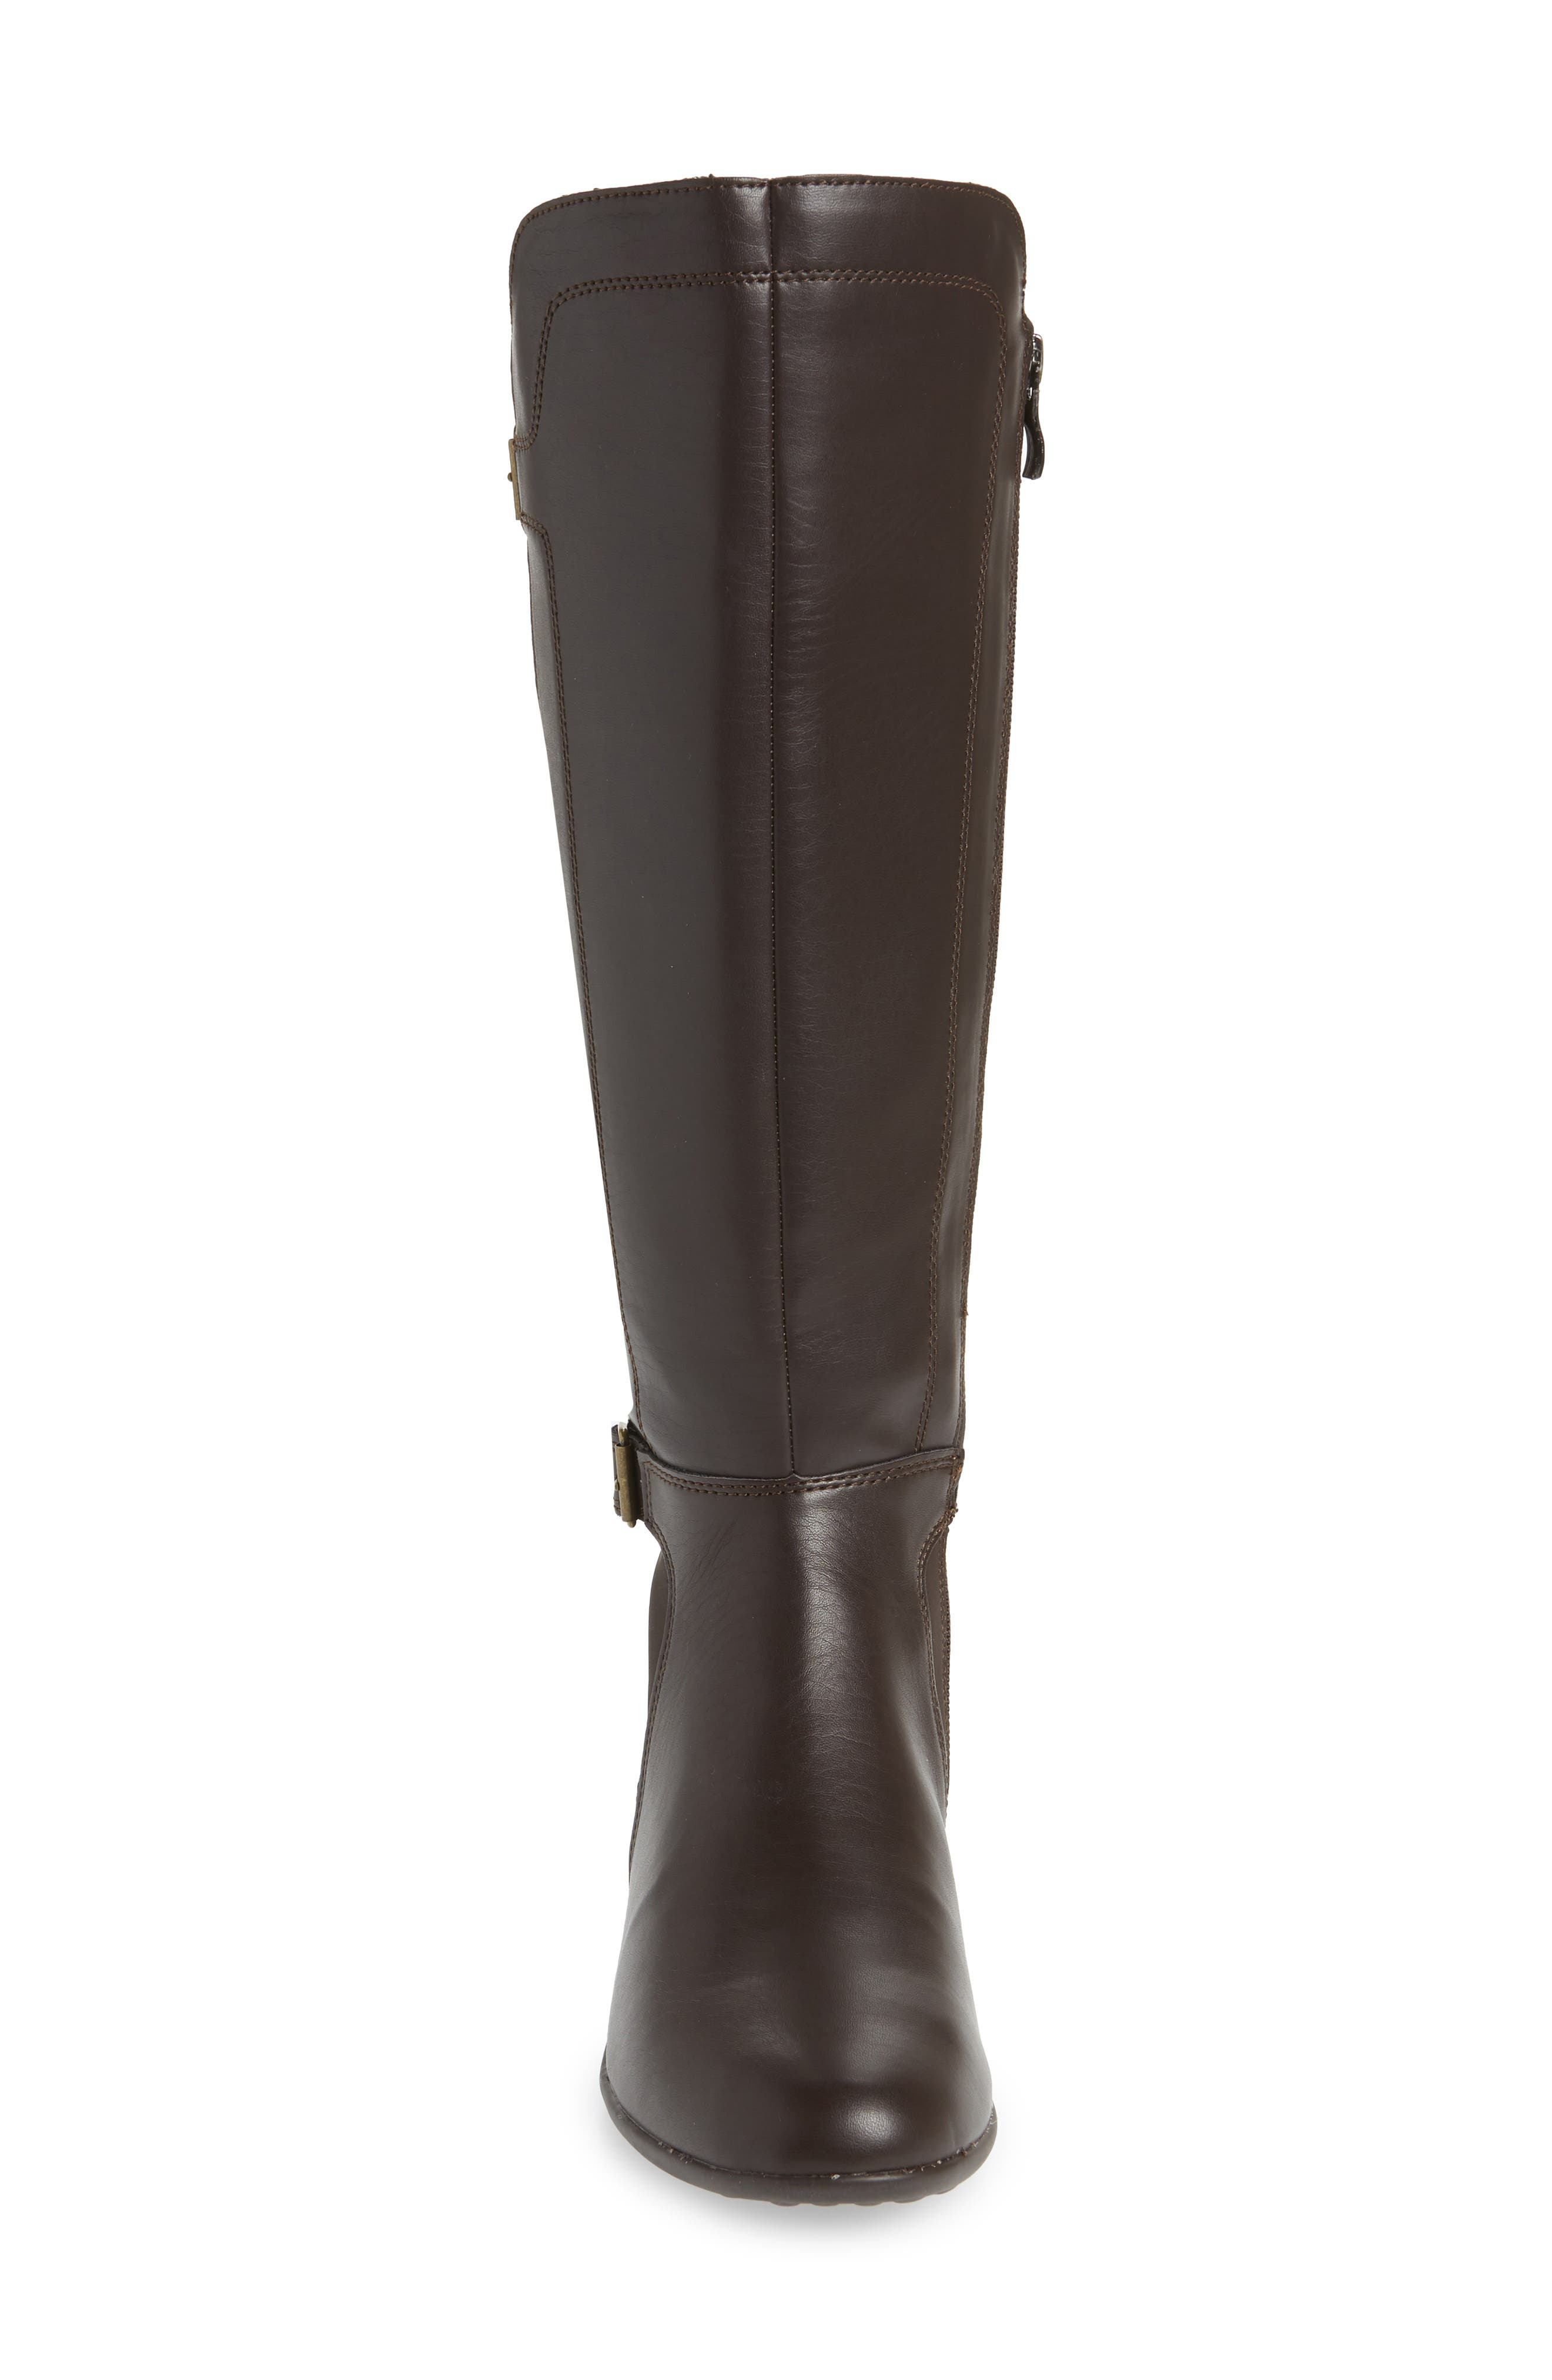 HUSH PUPPIES<SUP>®</SUP>, Bria Knee High Boot, Alternate thumbnail 4, color, DARK BROWN FAUX LEATHER